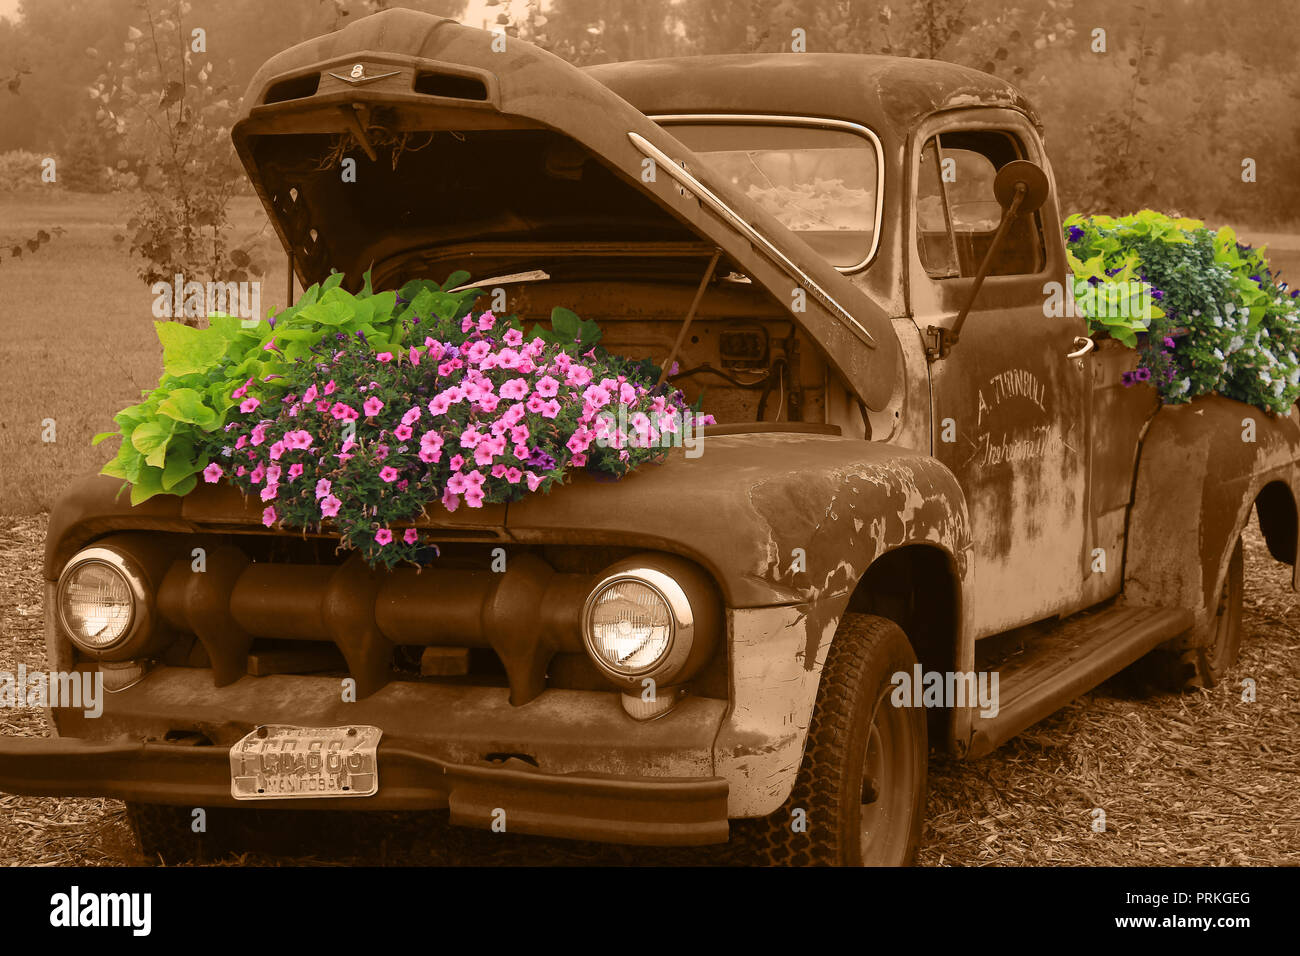 Selective color vintage truck with colorful flowers - Stock Image